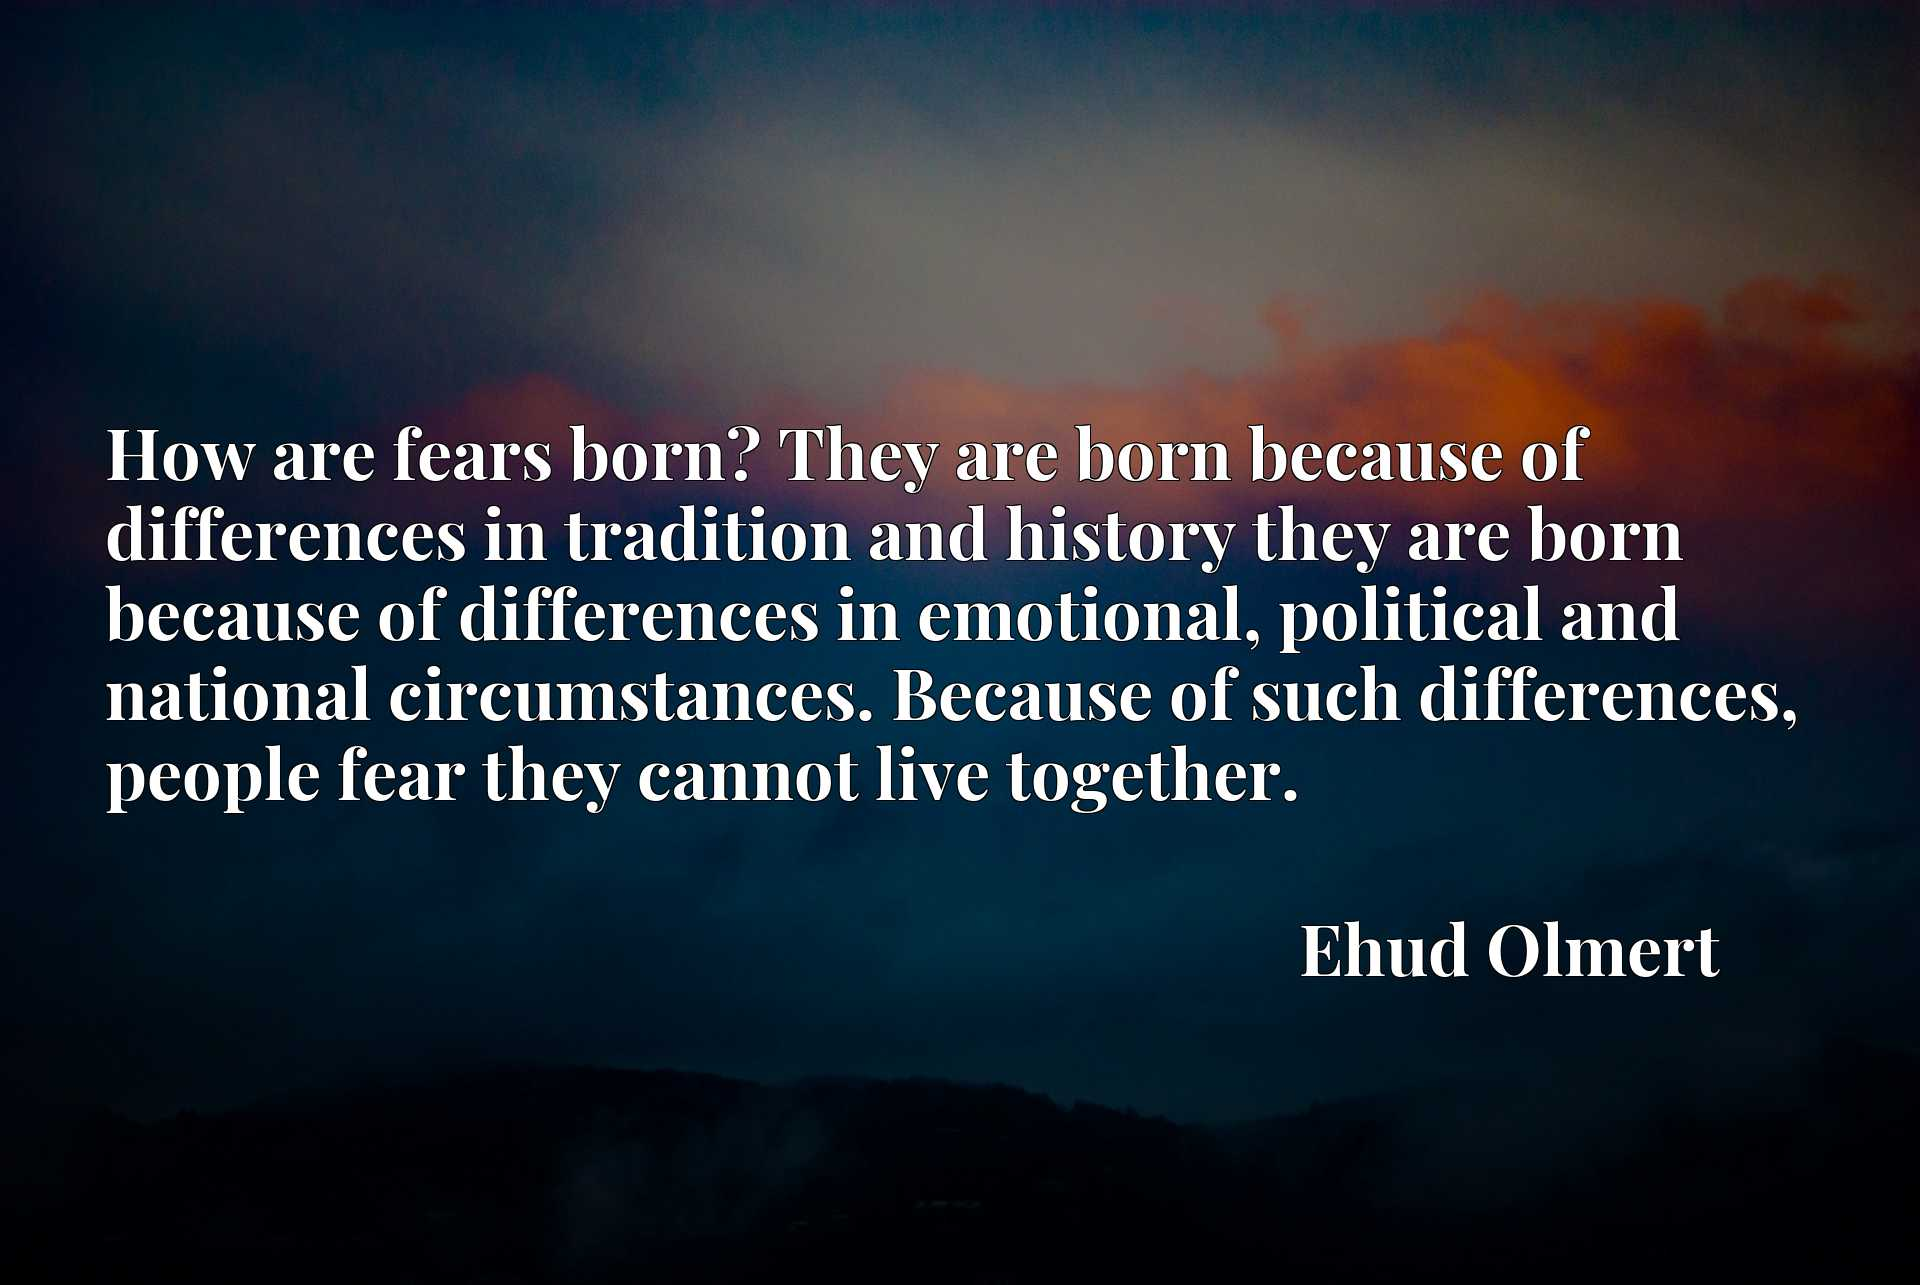 How are fears born? They are born because of differences in tradition and history they are born because of differences in emotional, political and national circumstances. Because of such differences, people fear they cannot live together.